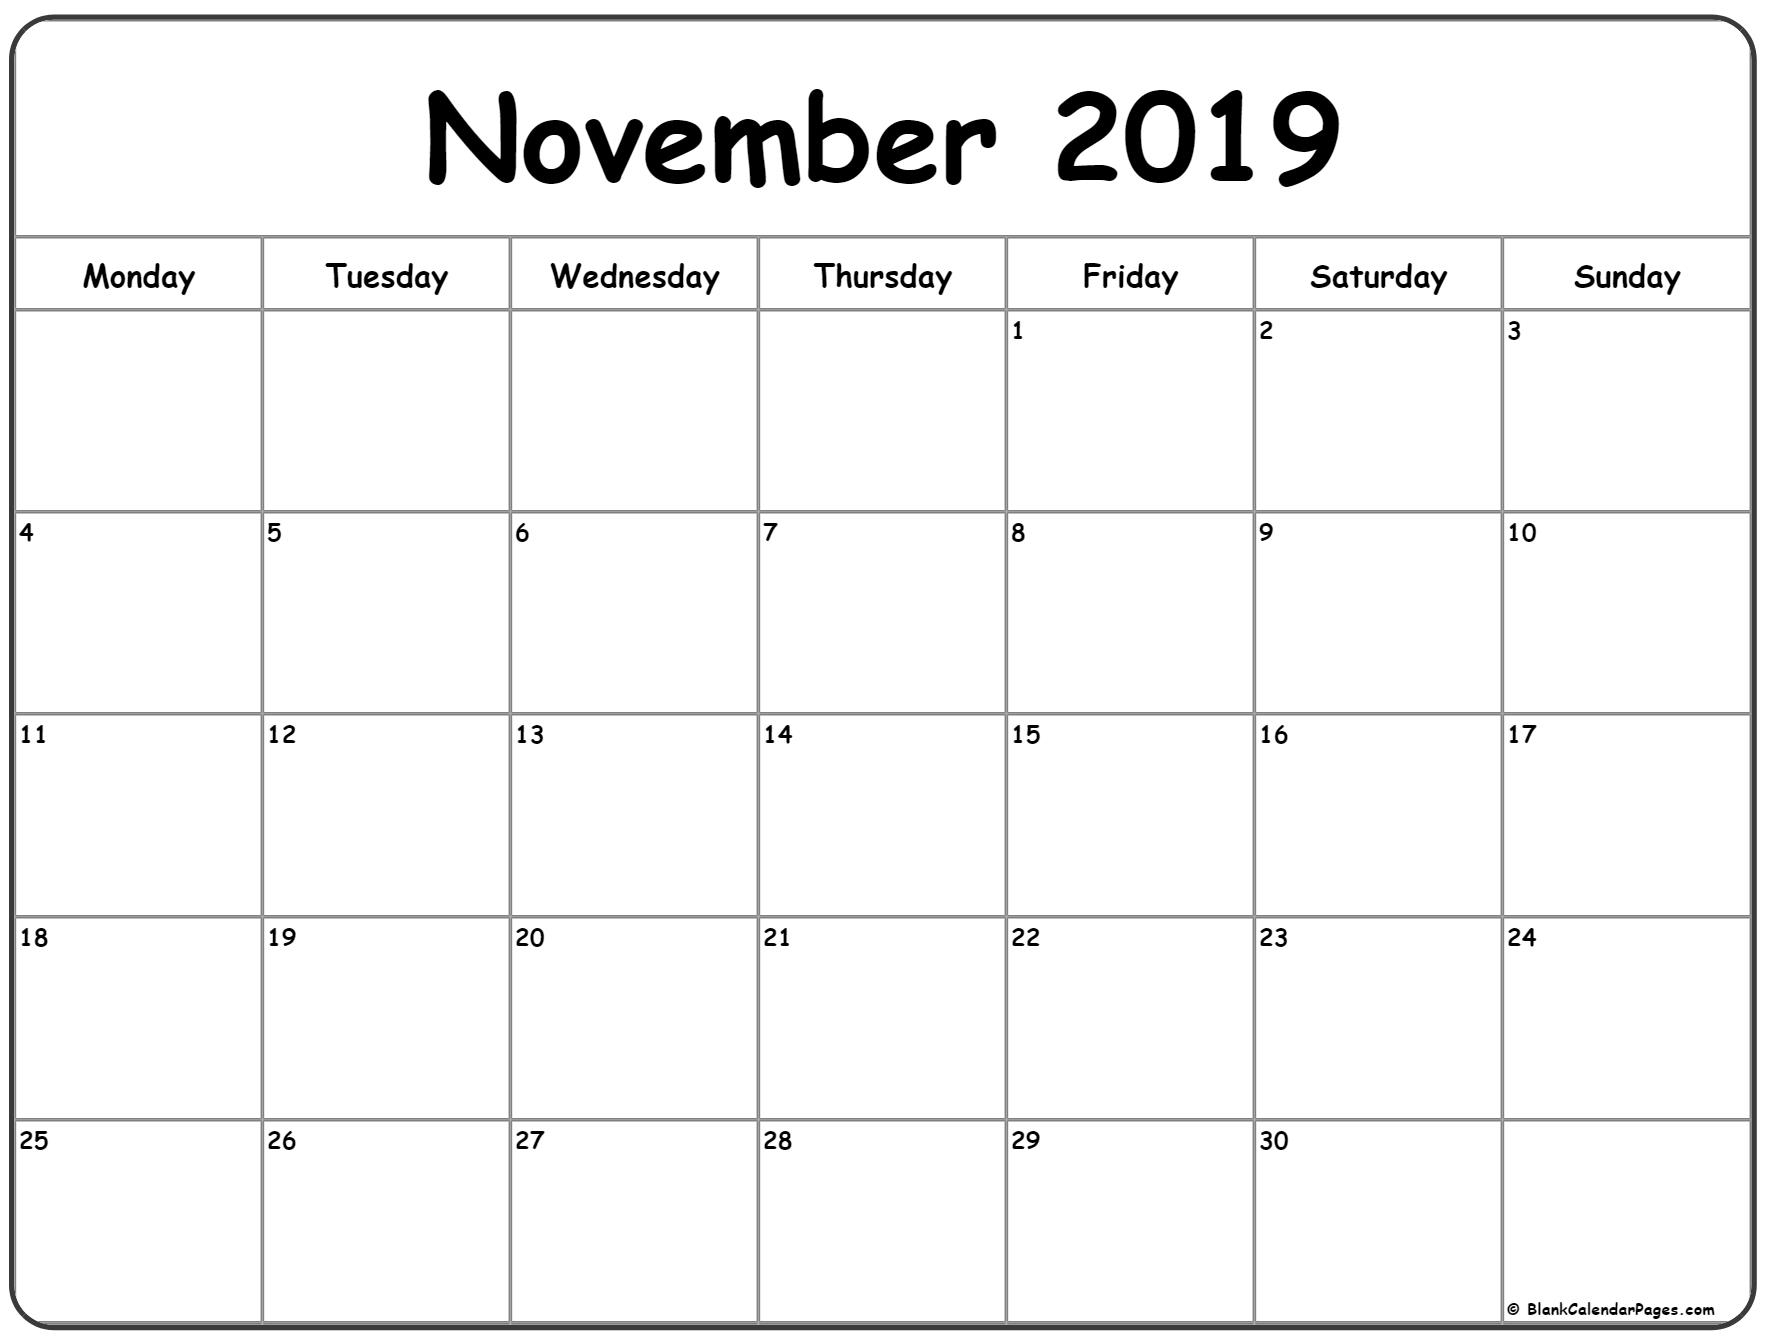 November 2019 Monday Calendar | Monday To Sunday